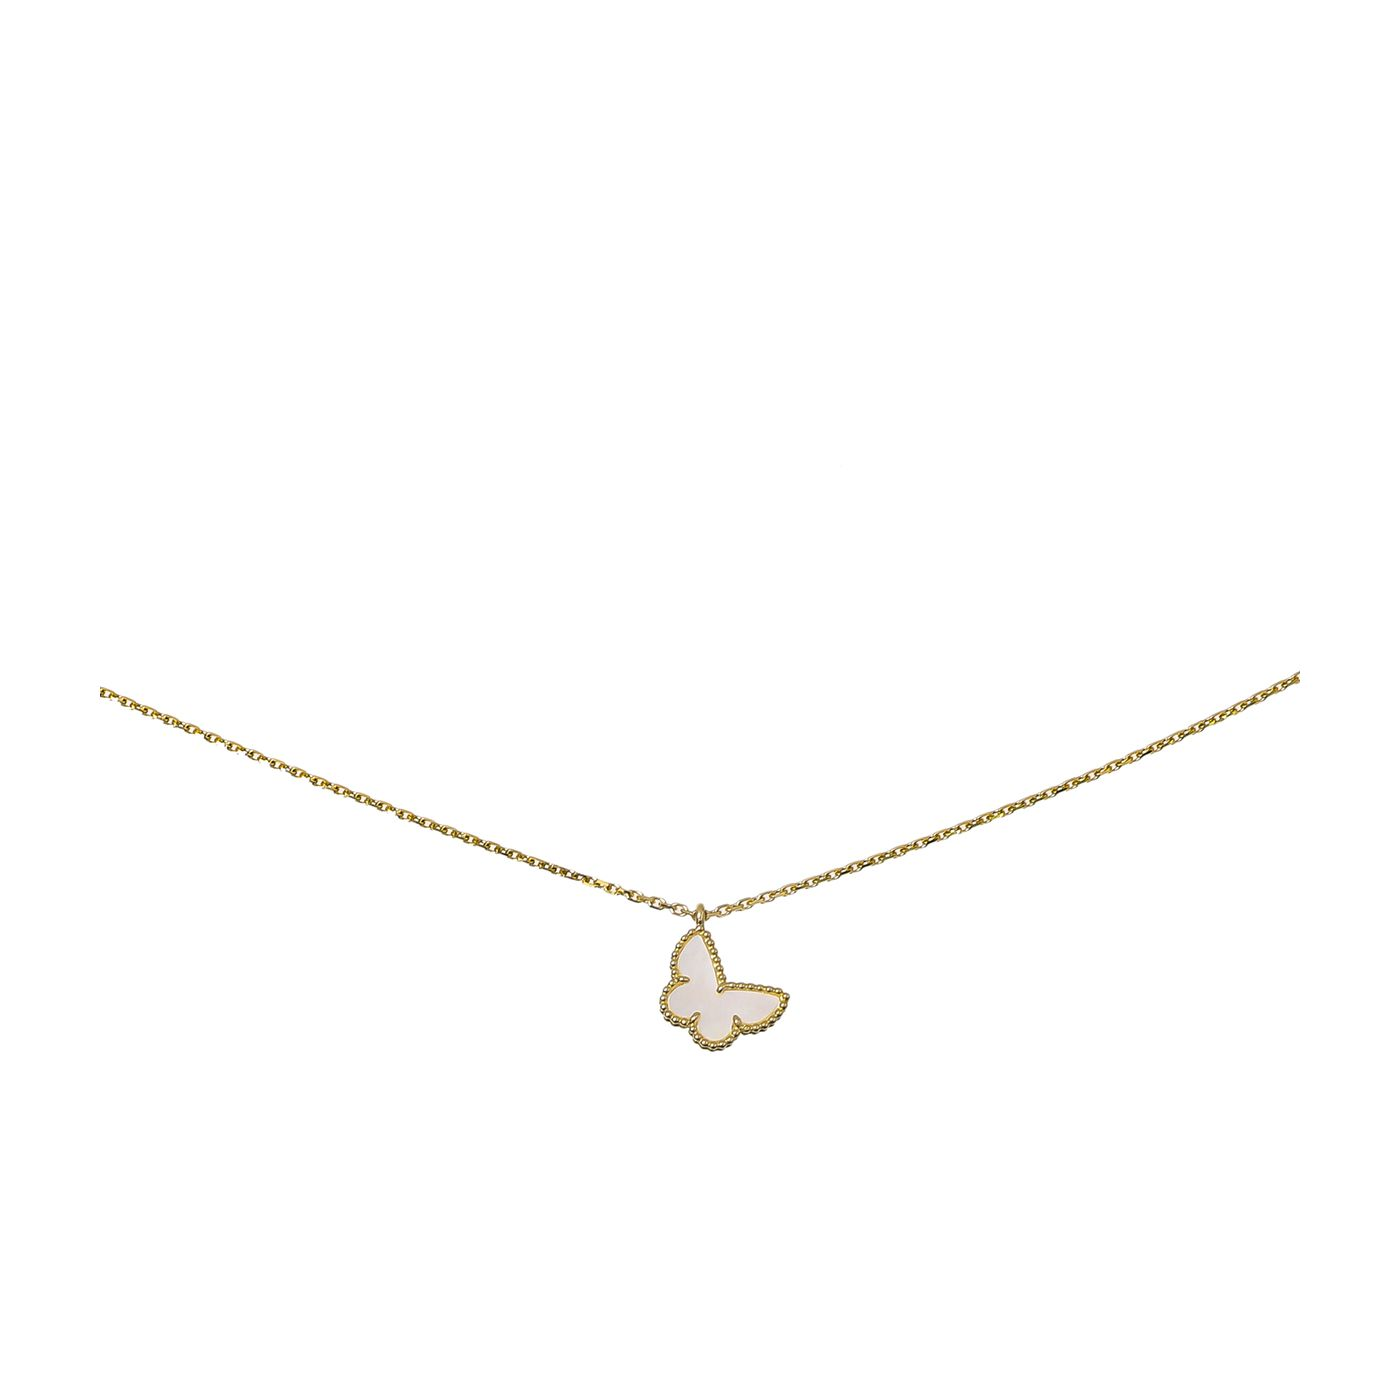 Van Cleef & Arpels 18K Yellow Gold Sweet Alhambra Butterfly Pendant Necklace